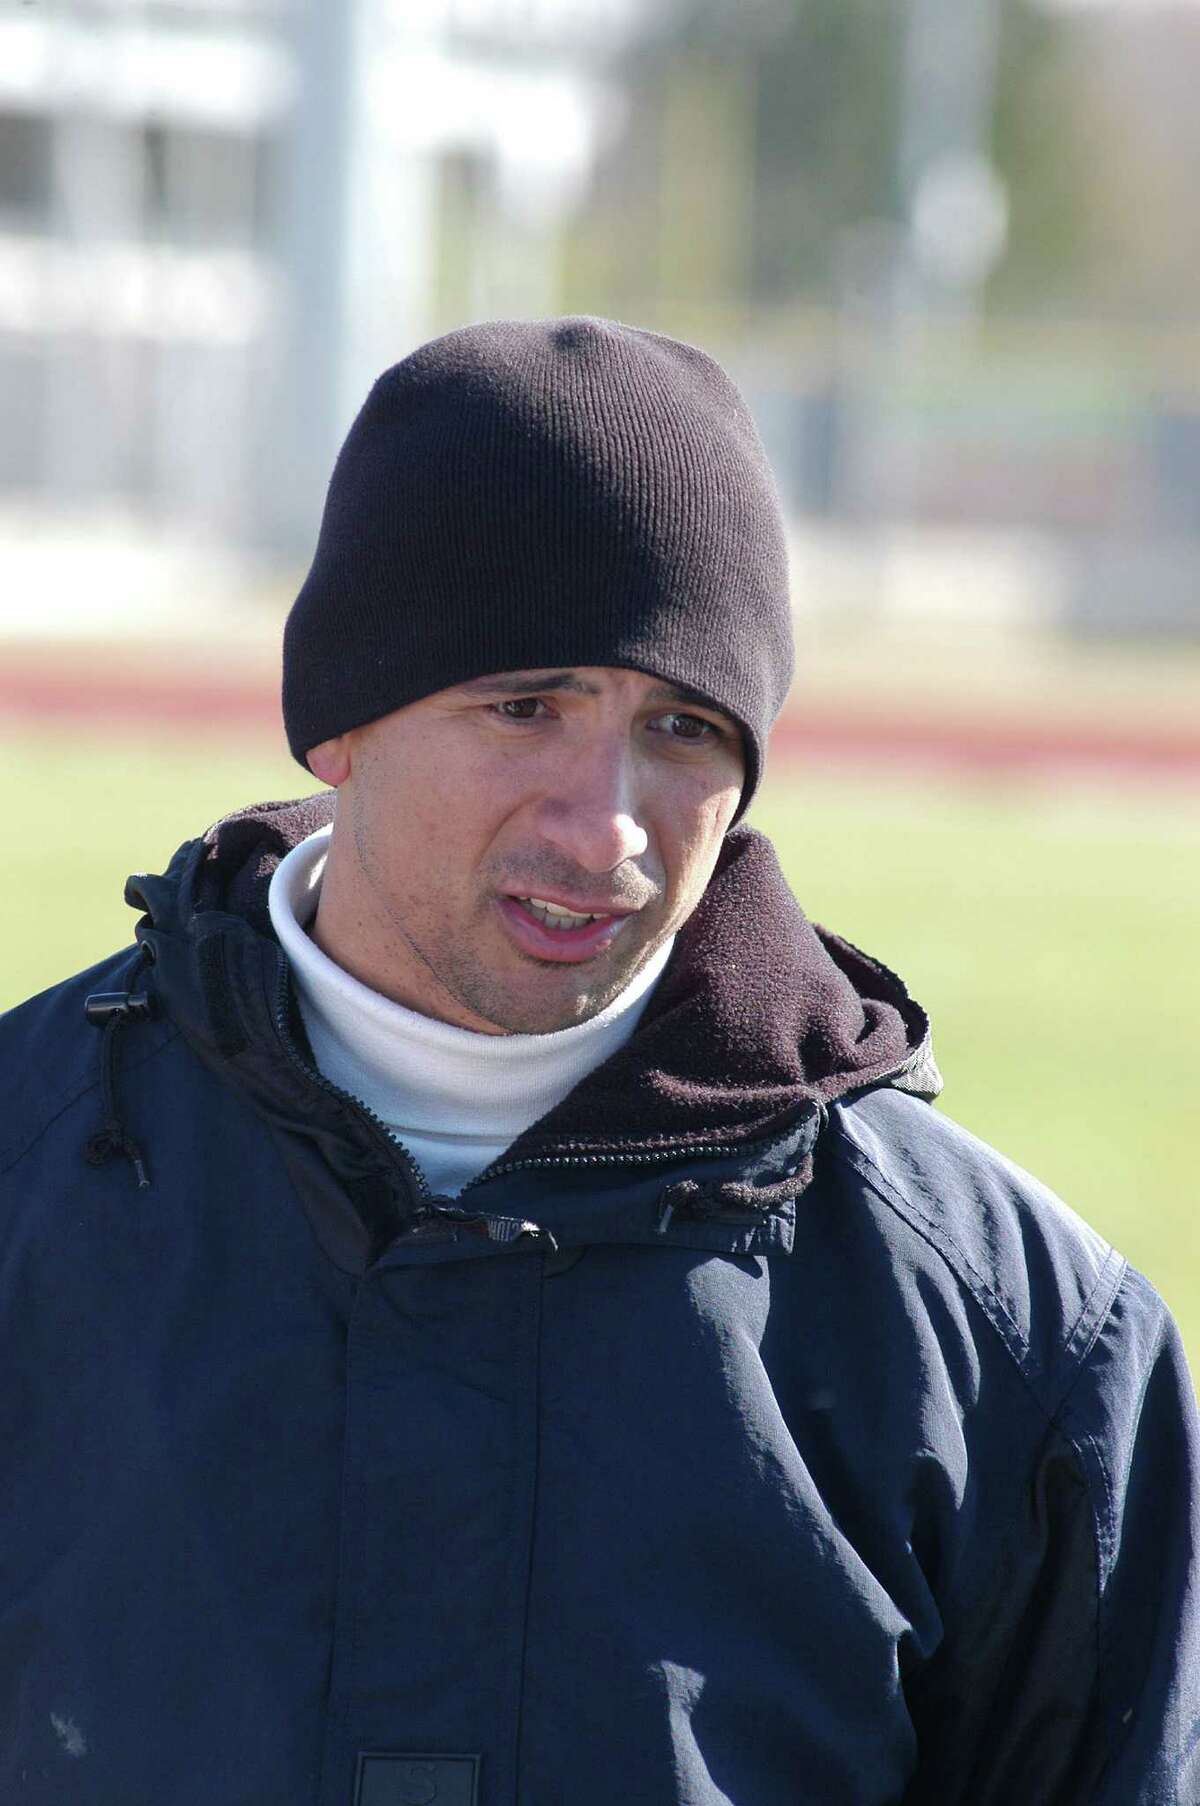 Manvel boys soccer coach Daniel Chapa during a 4-0 loss to Spring Branch Memorial during the Alvin ISD Tournament on Jan. 19, 2008 at Manvel High School.